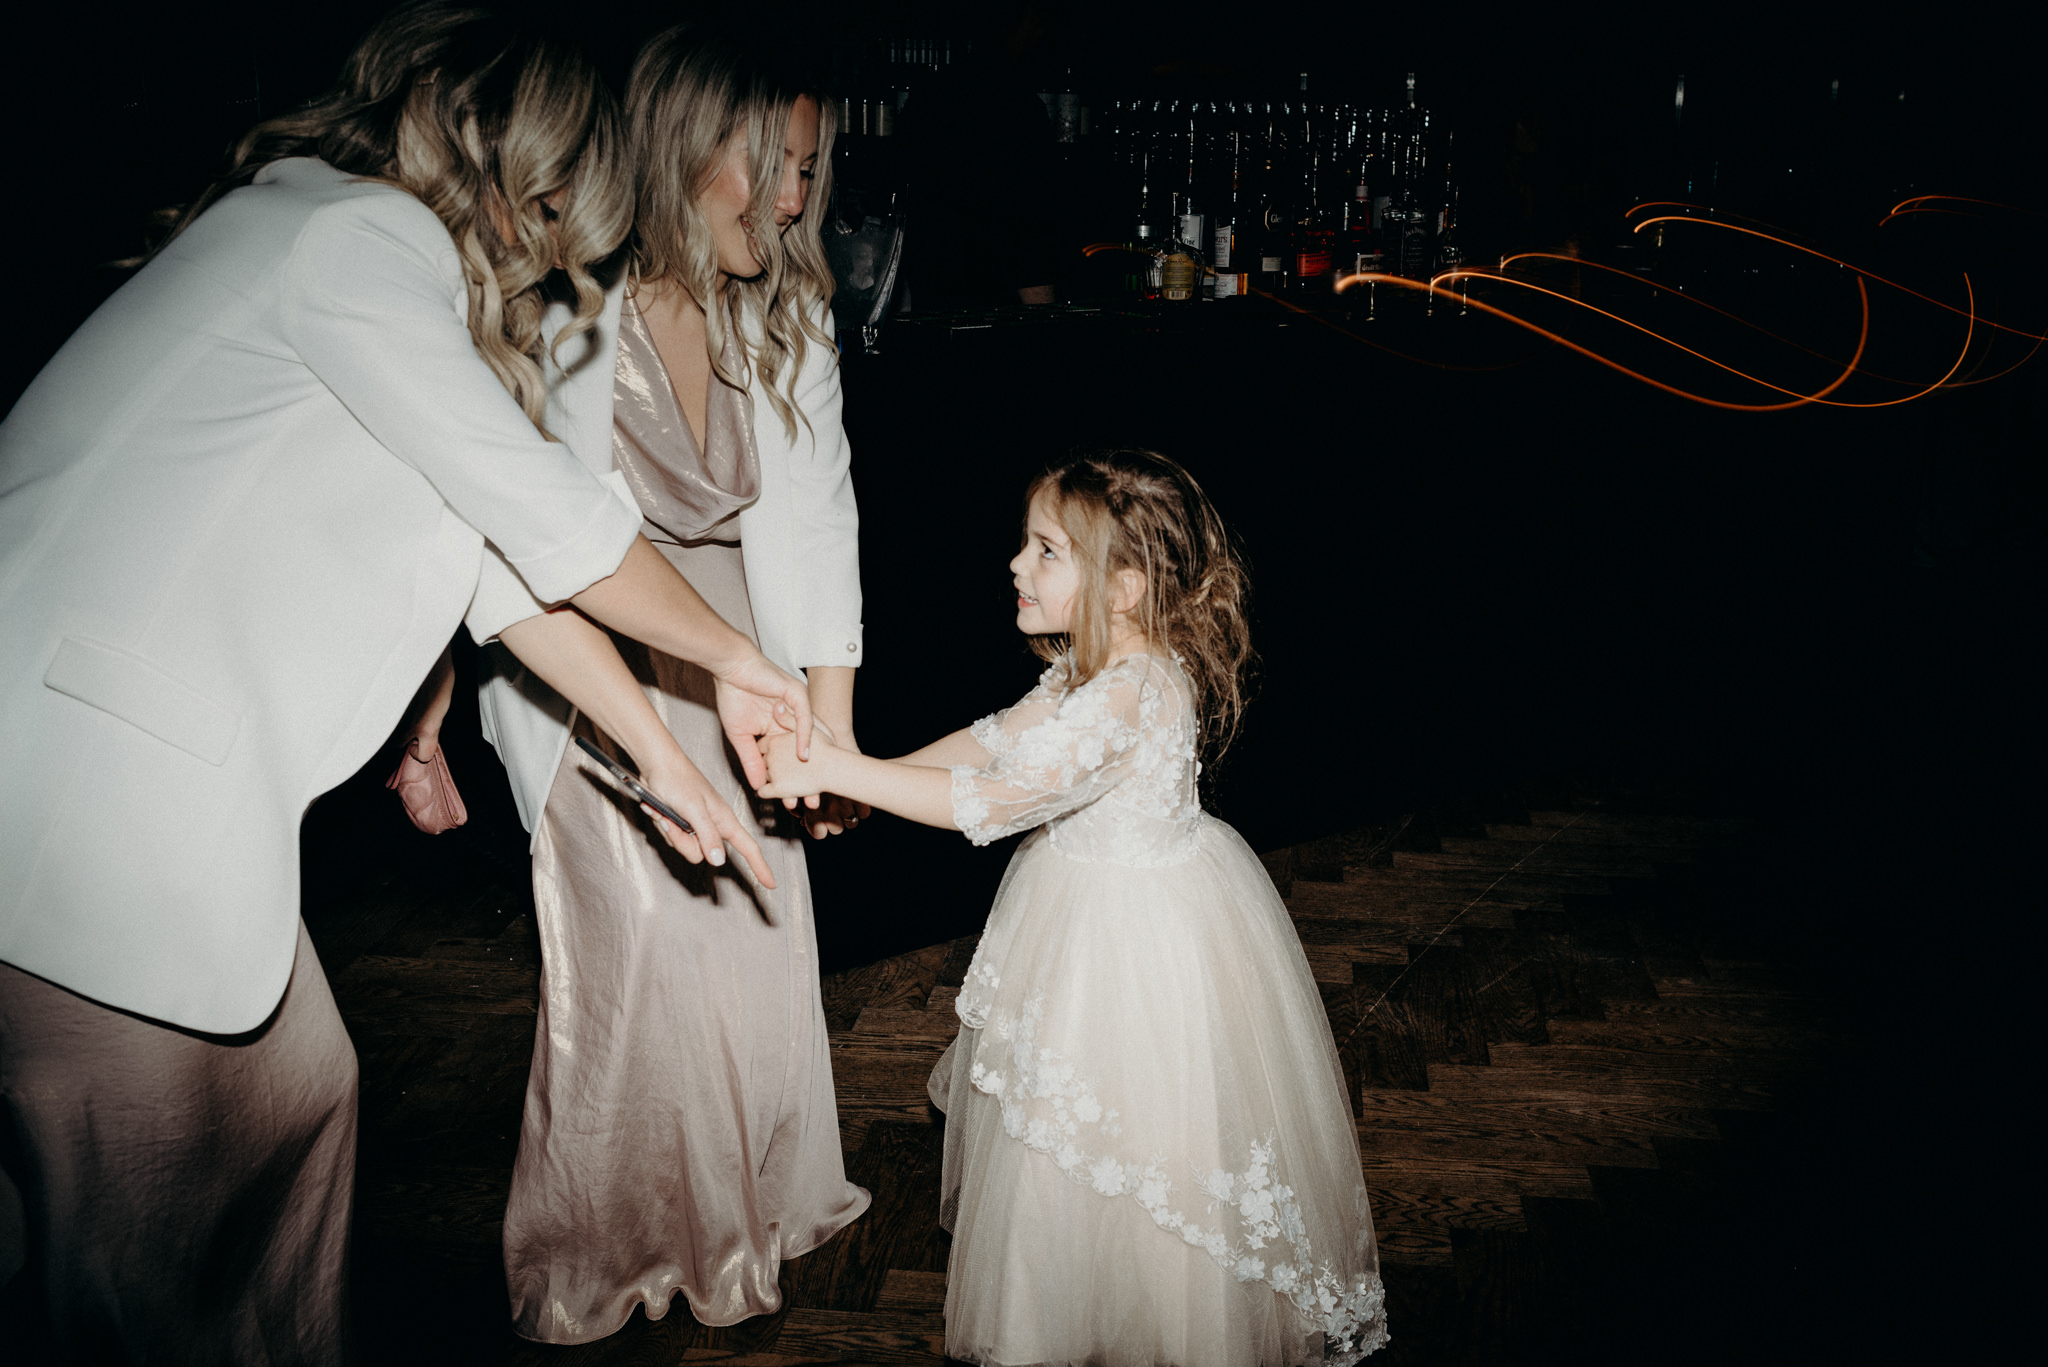 bridesmaids dancing with flower girl during wedding reception at Storys Building